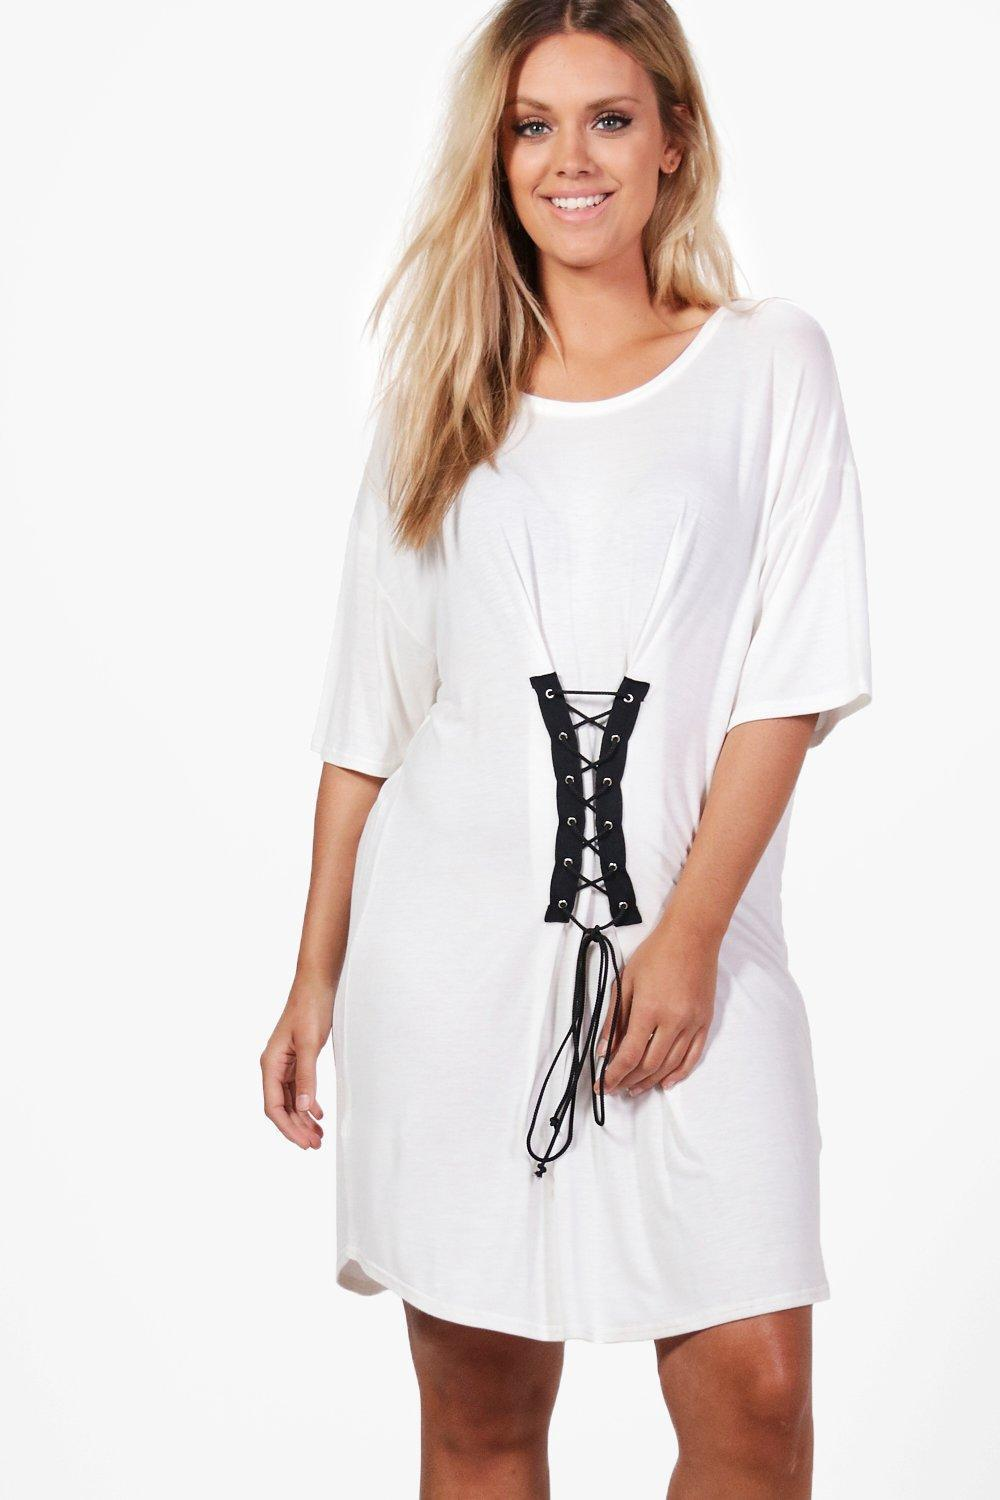 639d2f53f2 Lyst - Boohoo Plus Gerogina Corset Detail T-shirt Dress in White